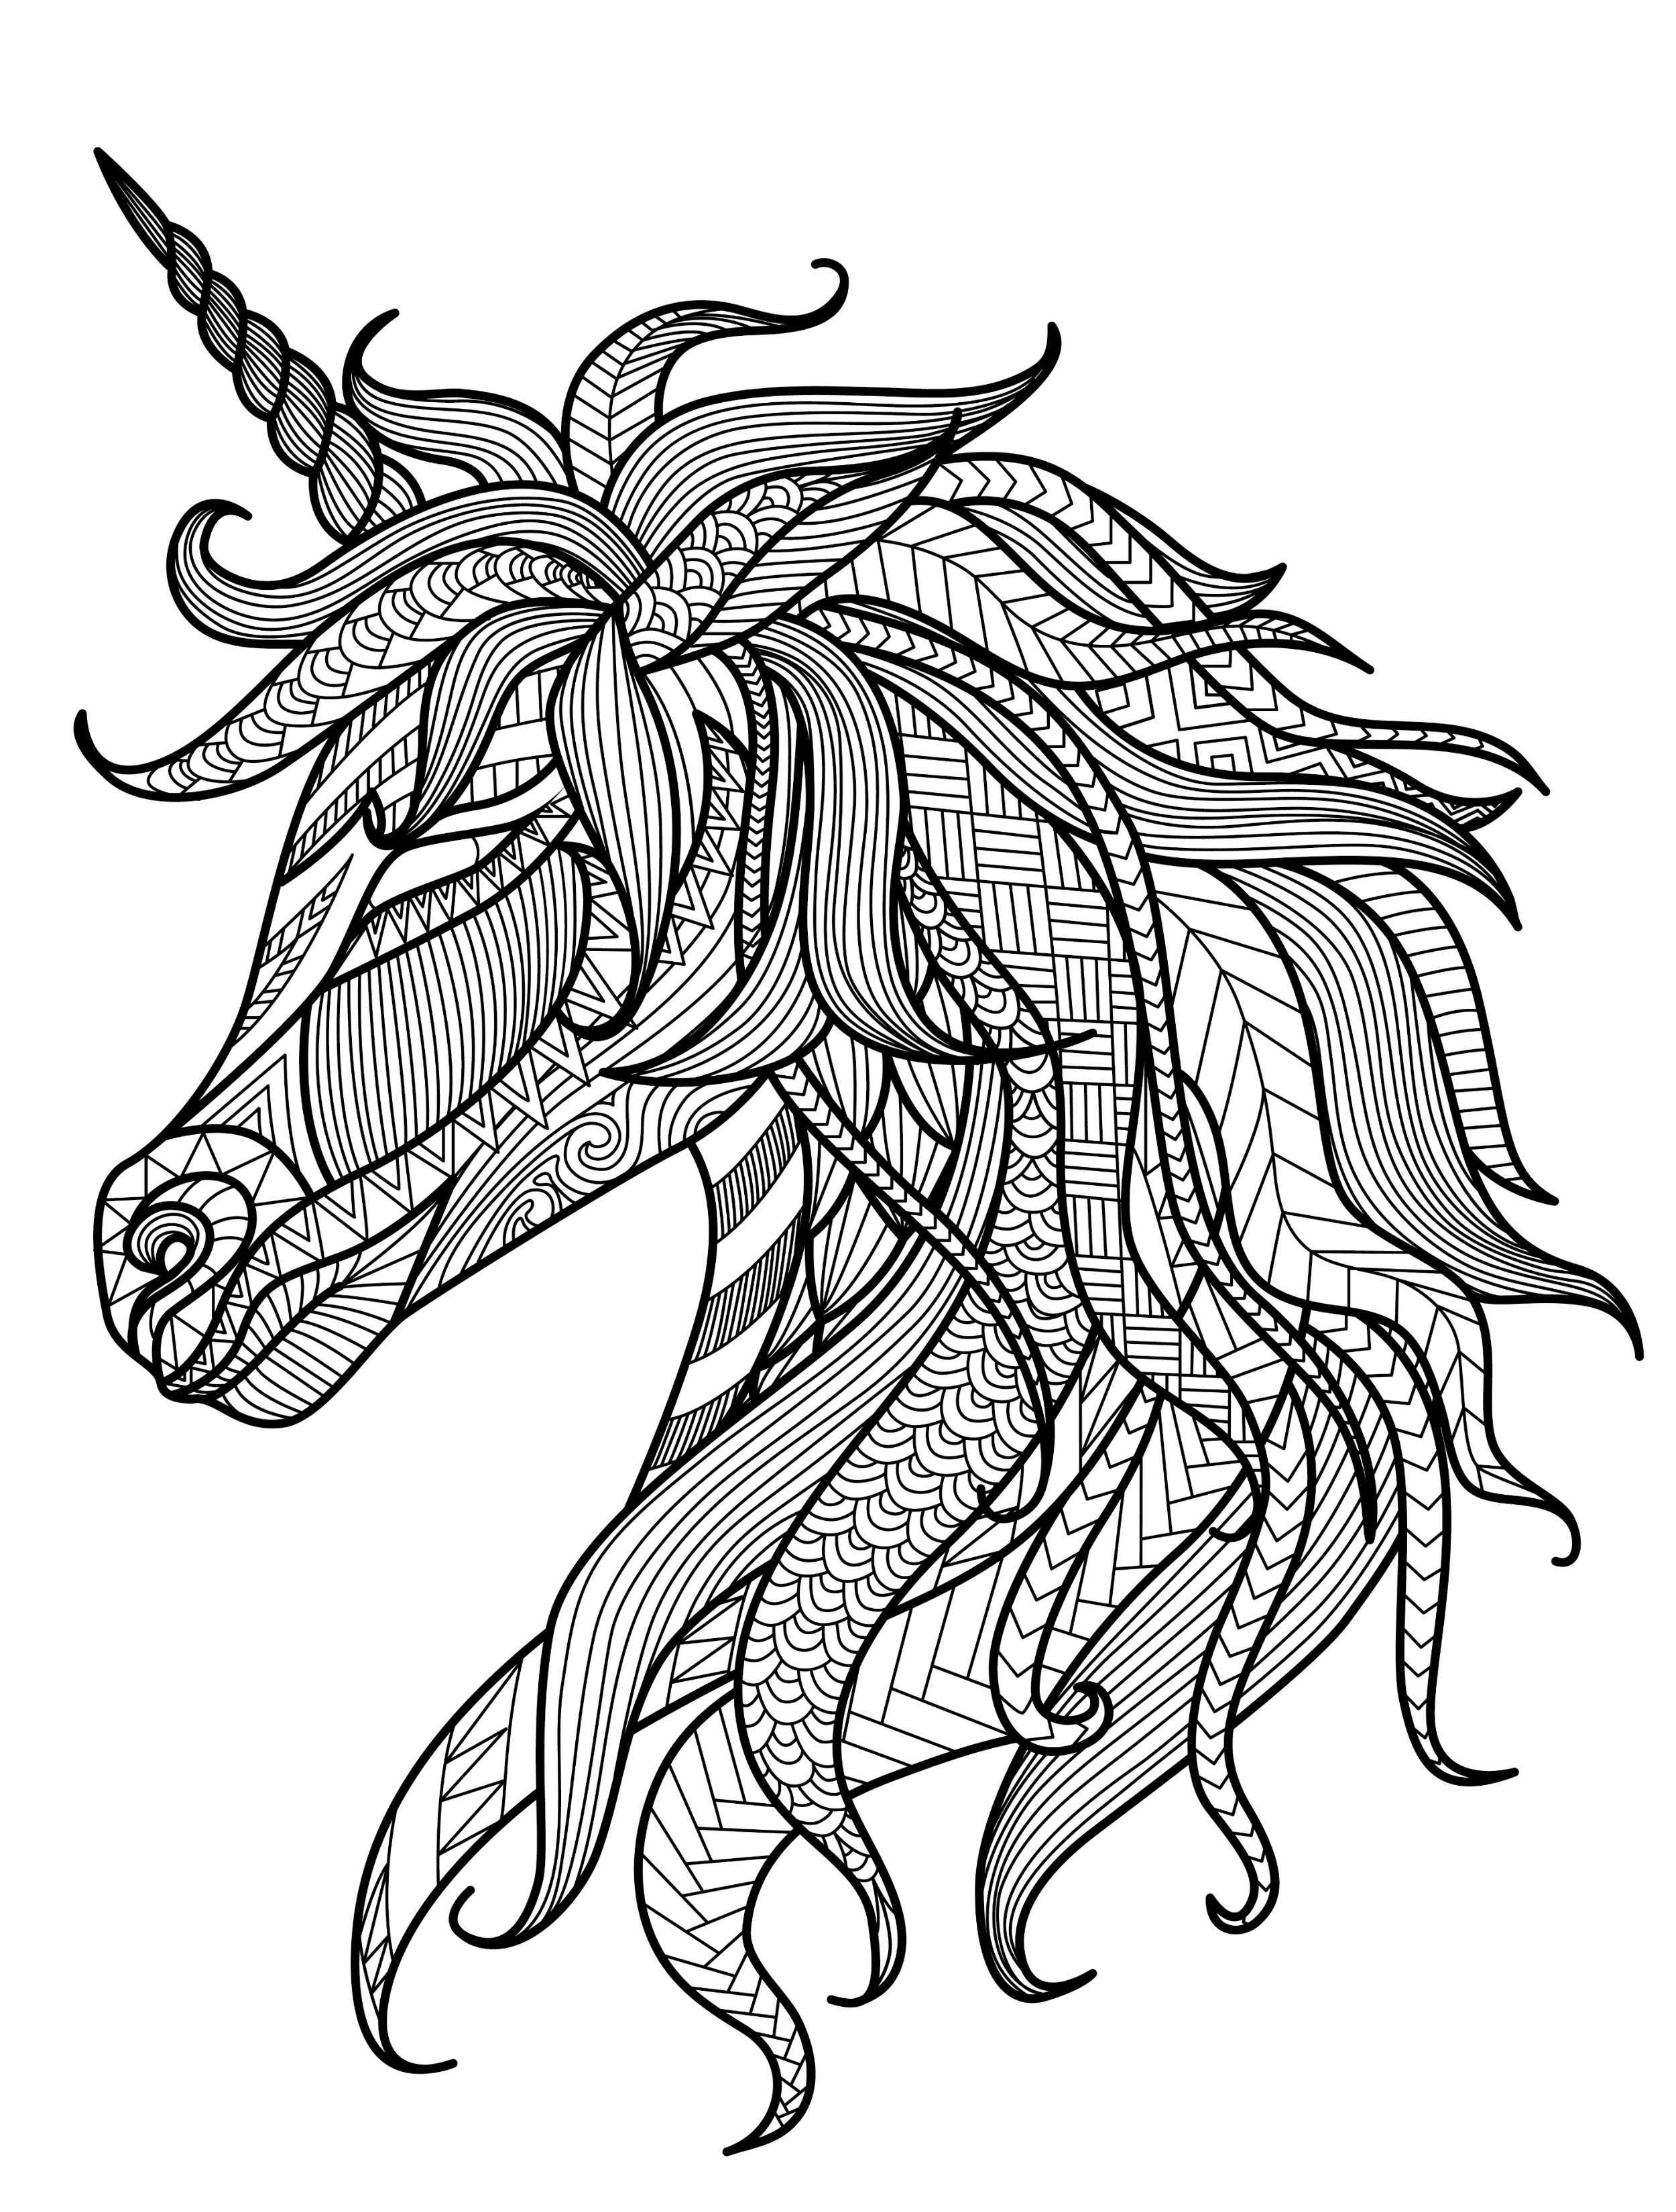 Adult Coloring Pages Unicorn  20 Gorgeous Free Printable Adult Coloring Pages Page 5